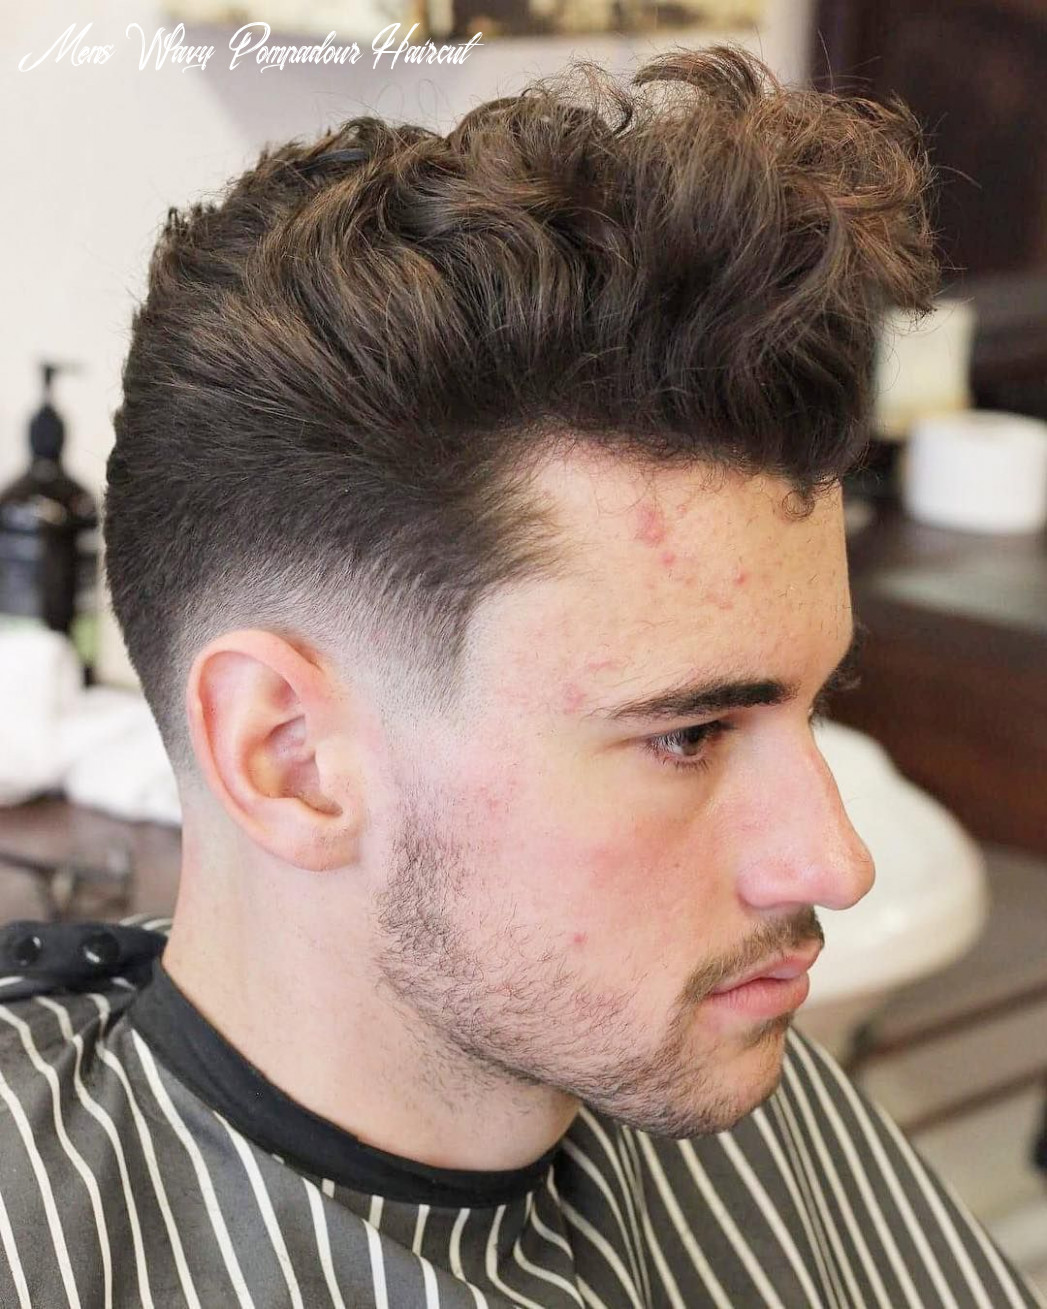 12 pompadour haircuts that look super cool (12 update